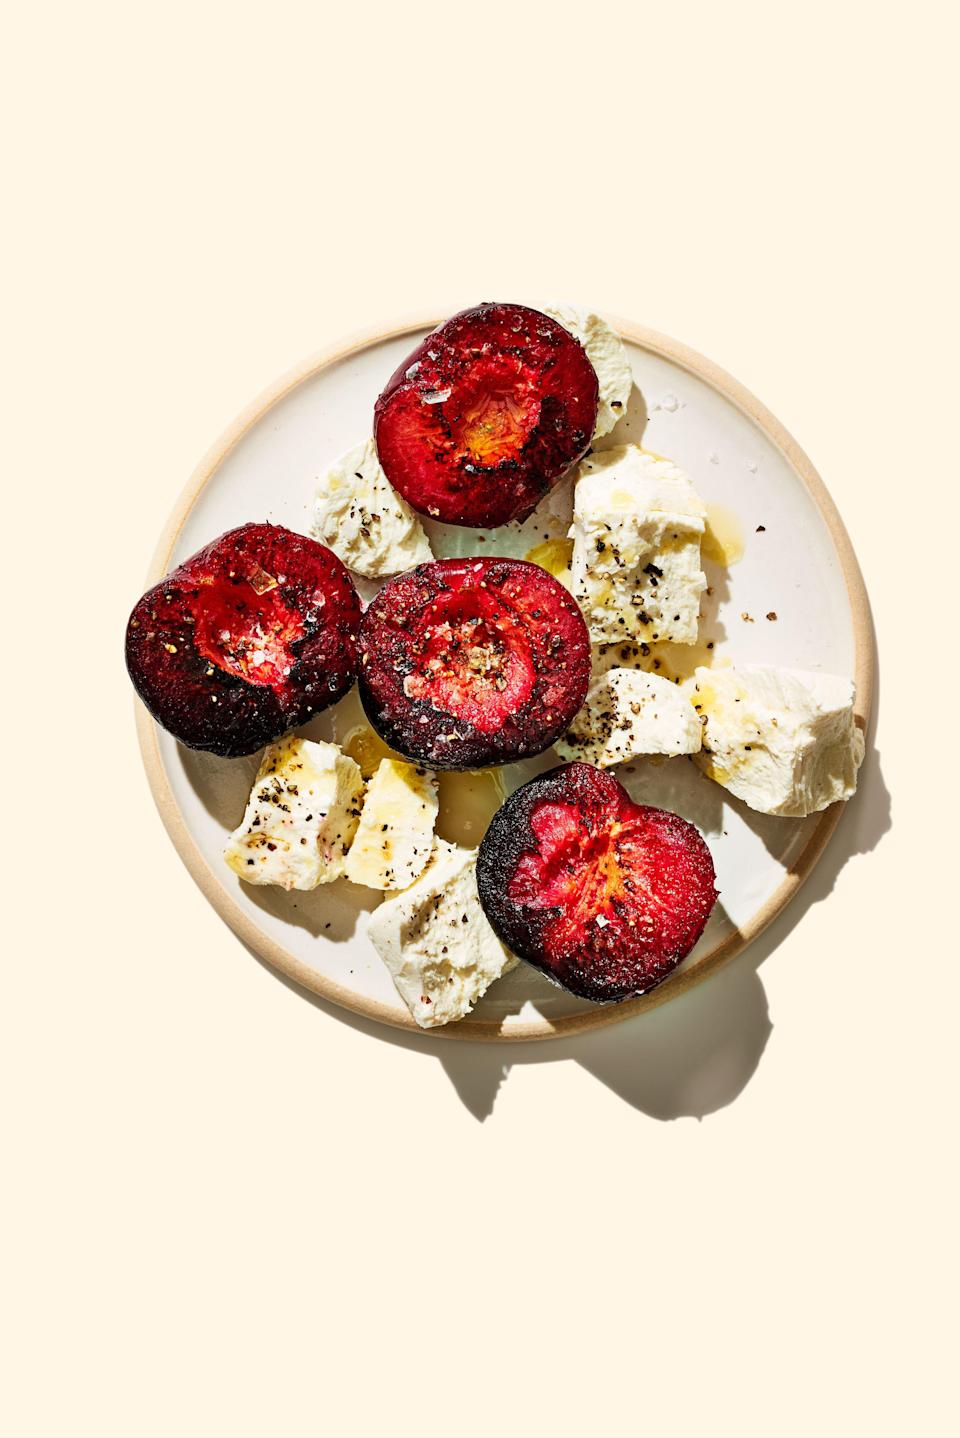 "Plums are summer's all-stars. You should eat and cook with them only when they are peaking, plentiful, and widely available in many varieties. <a href=""https://www.bonappetit.com/recipe/charred-buttered-plums-with-cheese?mbid=synd_yahoo_rss"" rel=""nofollow noopener"" target=""_blank"" data-ylk=""slk:See recipe."" class=""link rapid-noclick-resp"">See recipe.</a>"